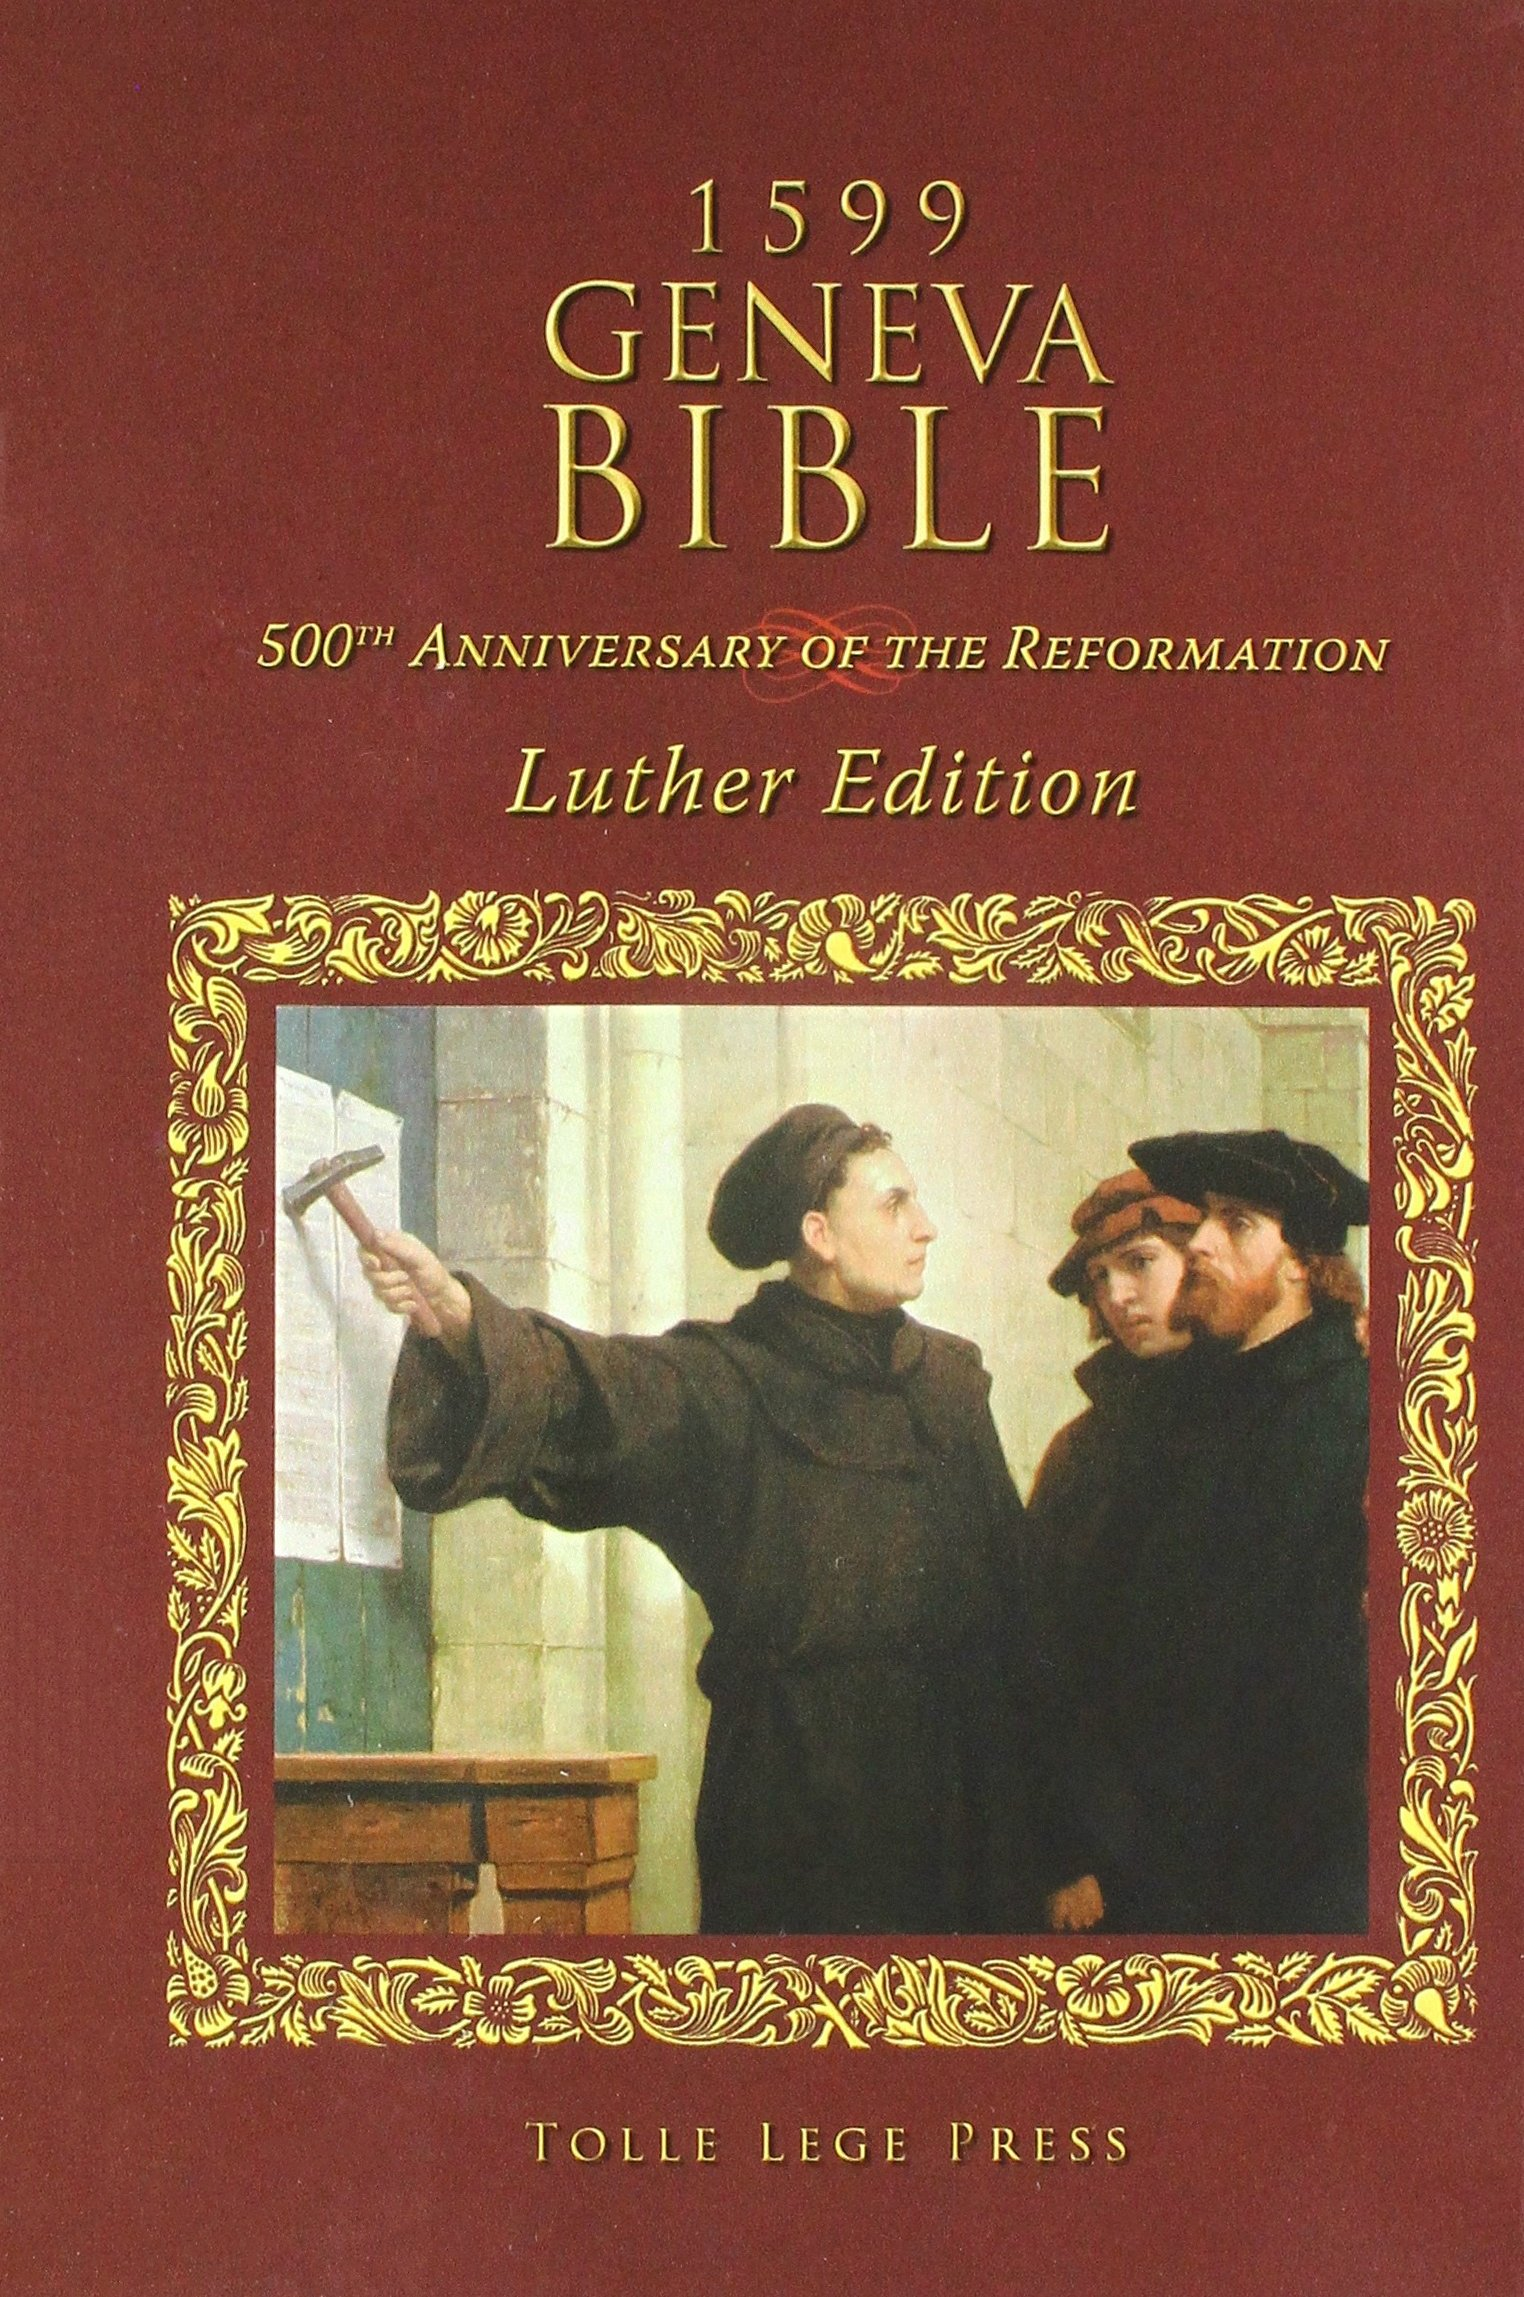 Read Online 1599 Geneva Bible: Luther Edition ebook